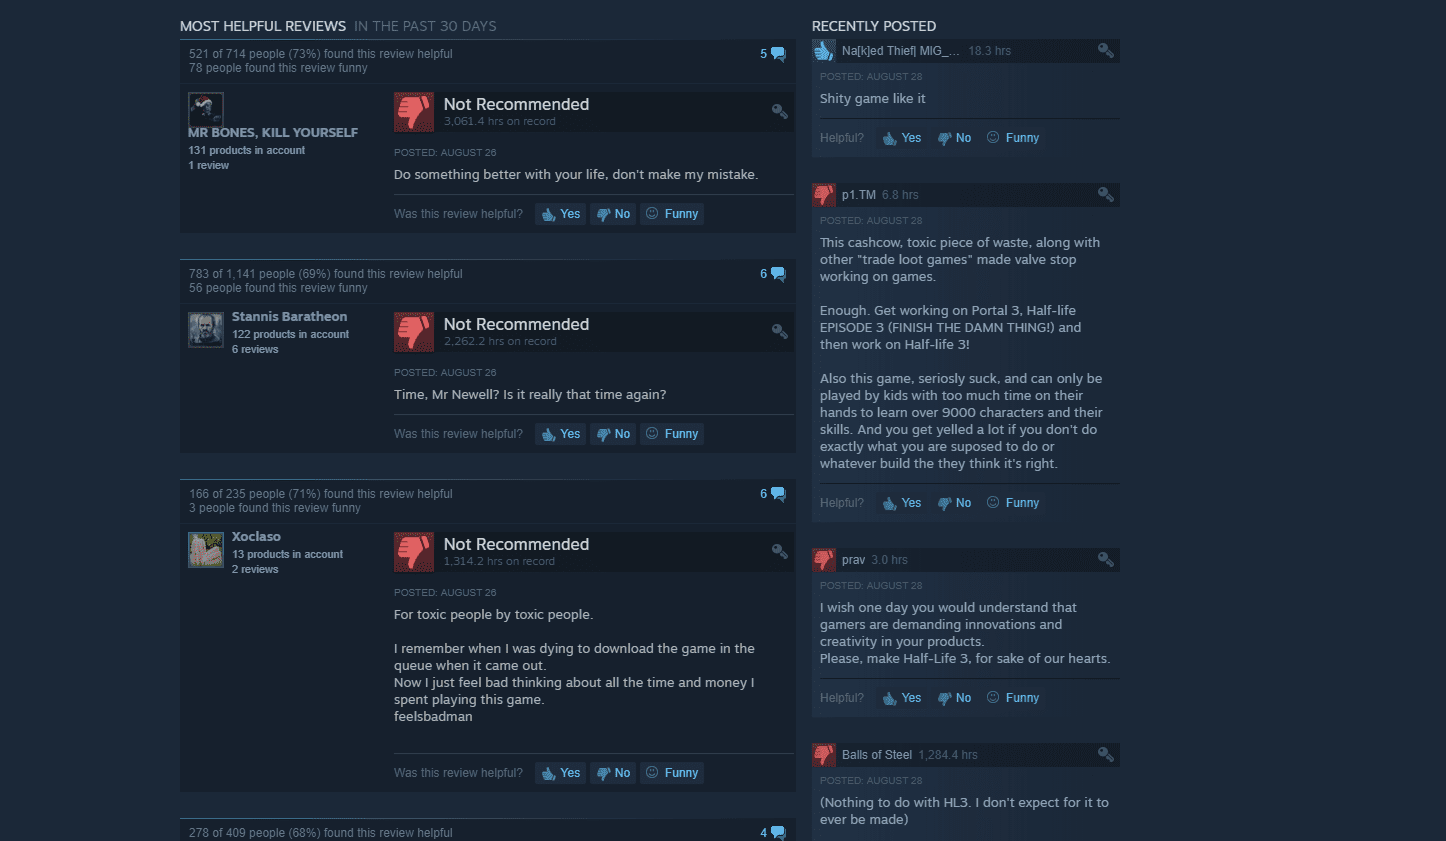 DOTA 2 is Getting Negative Reviews on Steam Because of Half